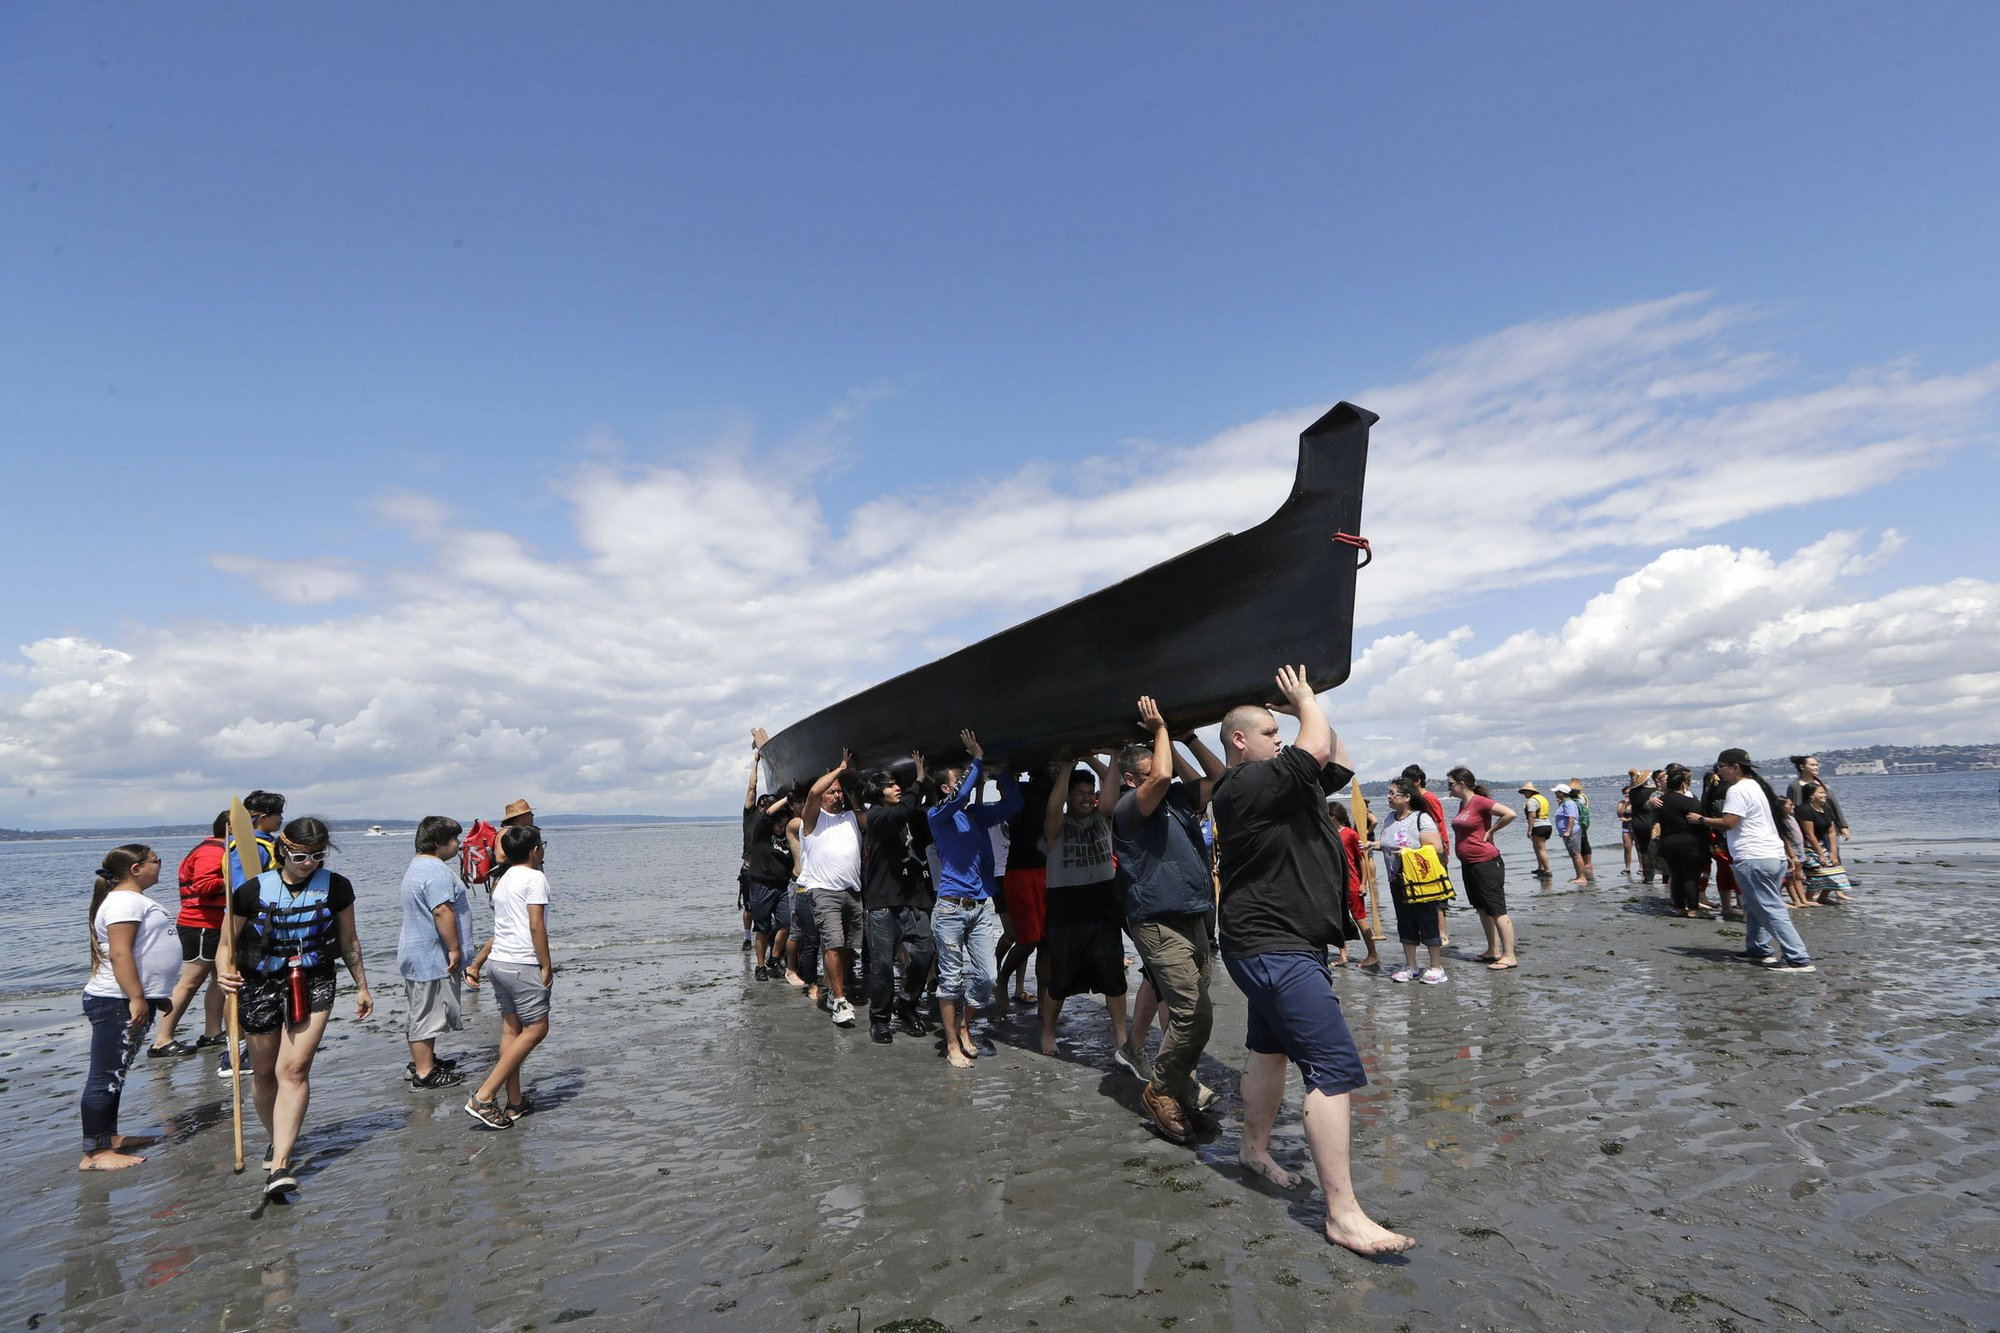 Tribal canoes arrive in Seattle for ceremony